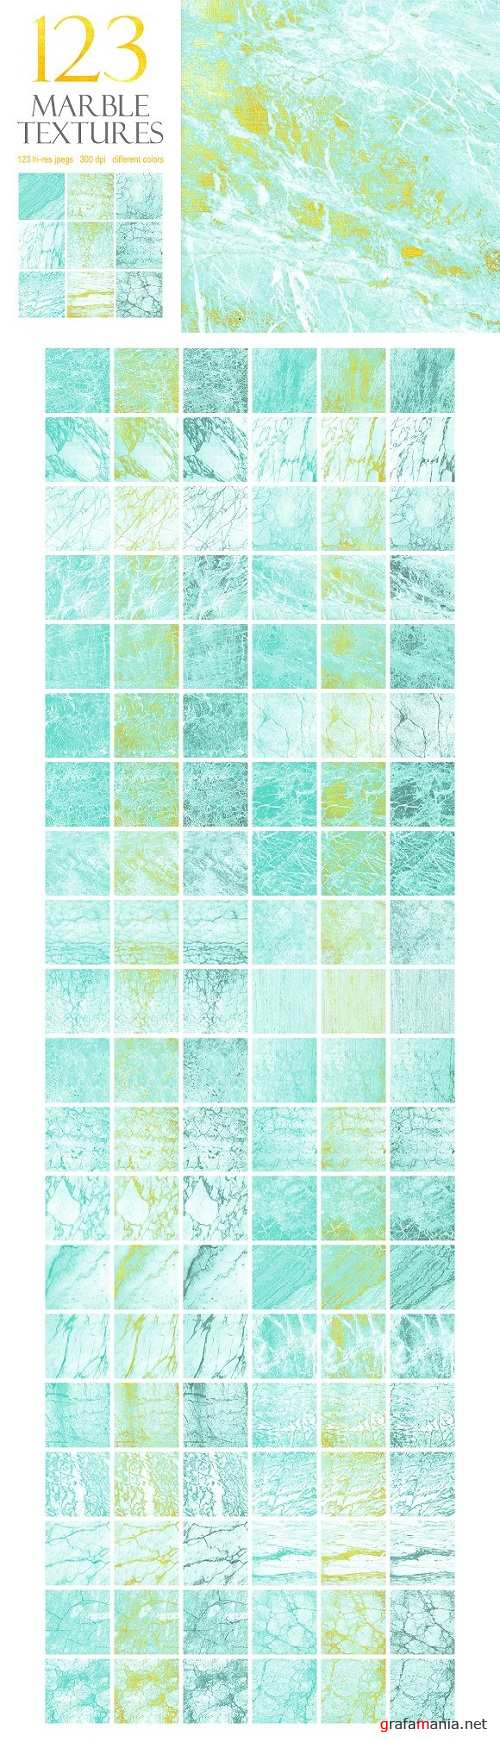 123 Marble Blue & Gold Textures 1410833